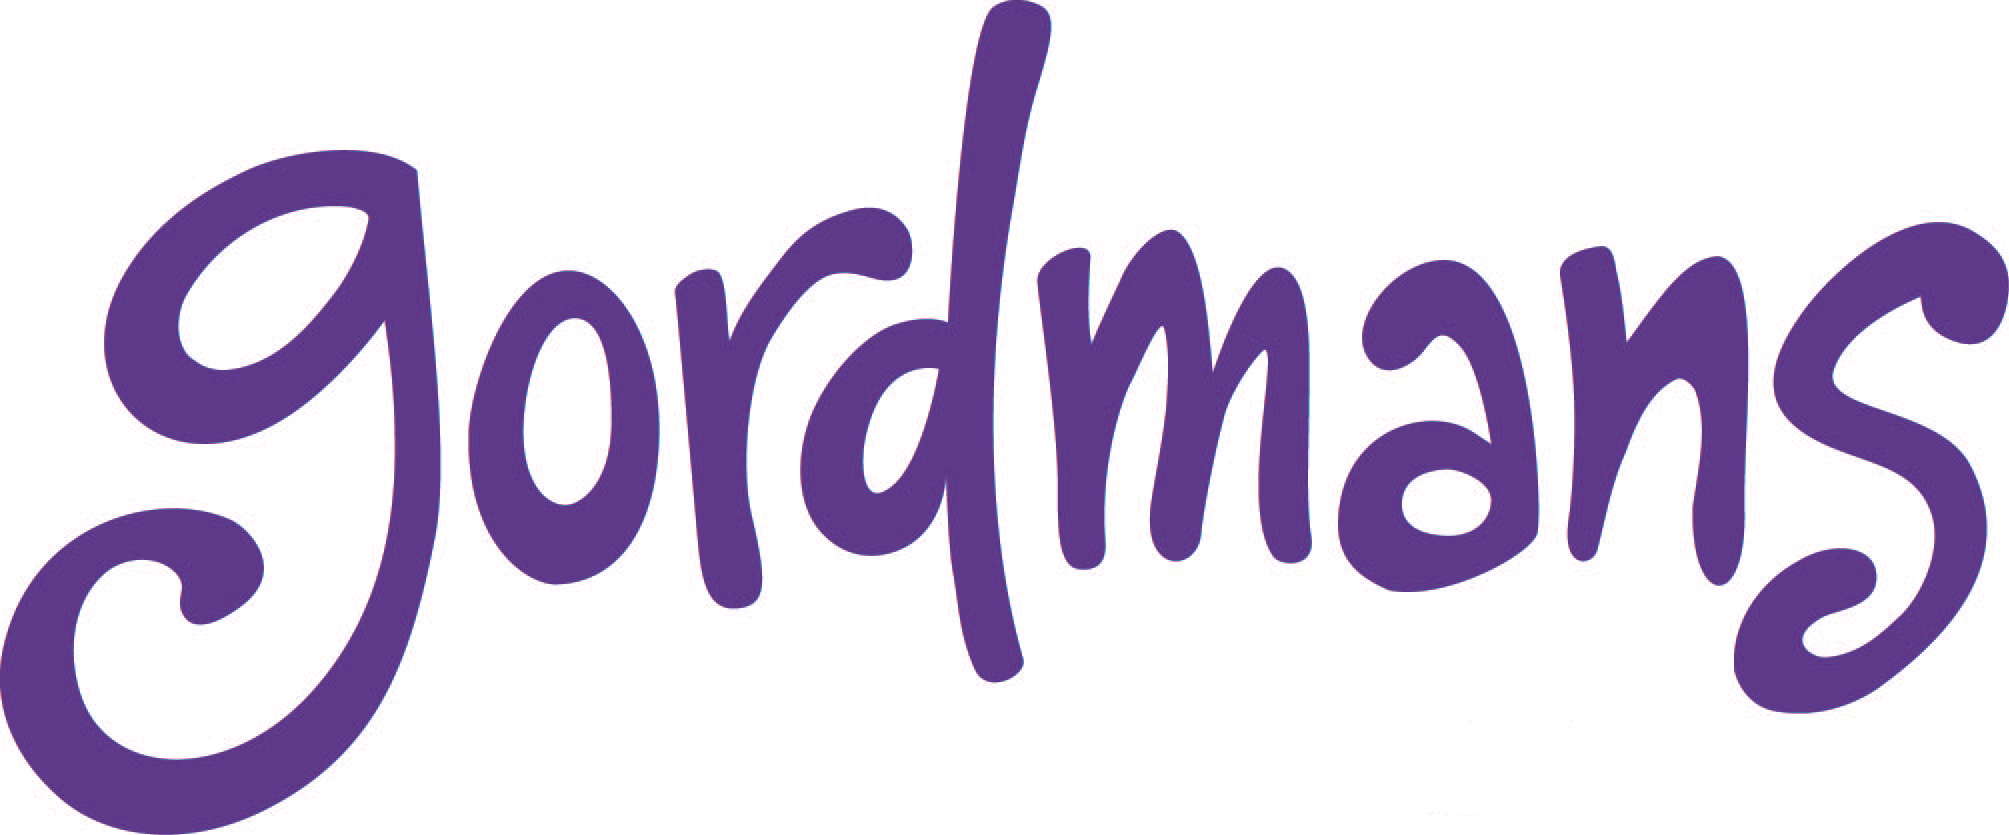 Gordmans_Purple_Logo.jpg